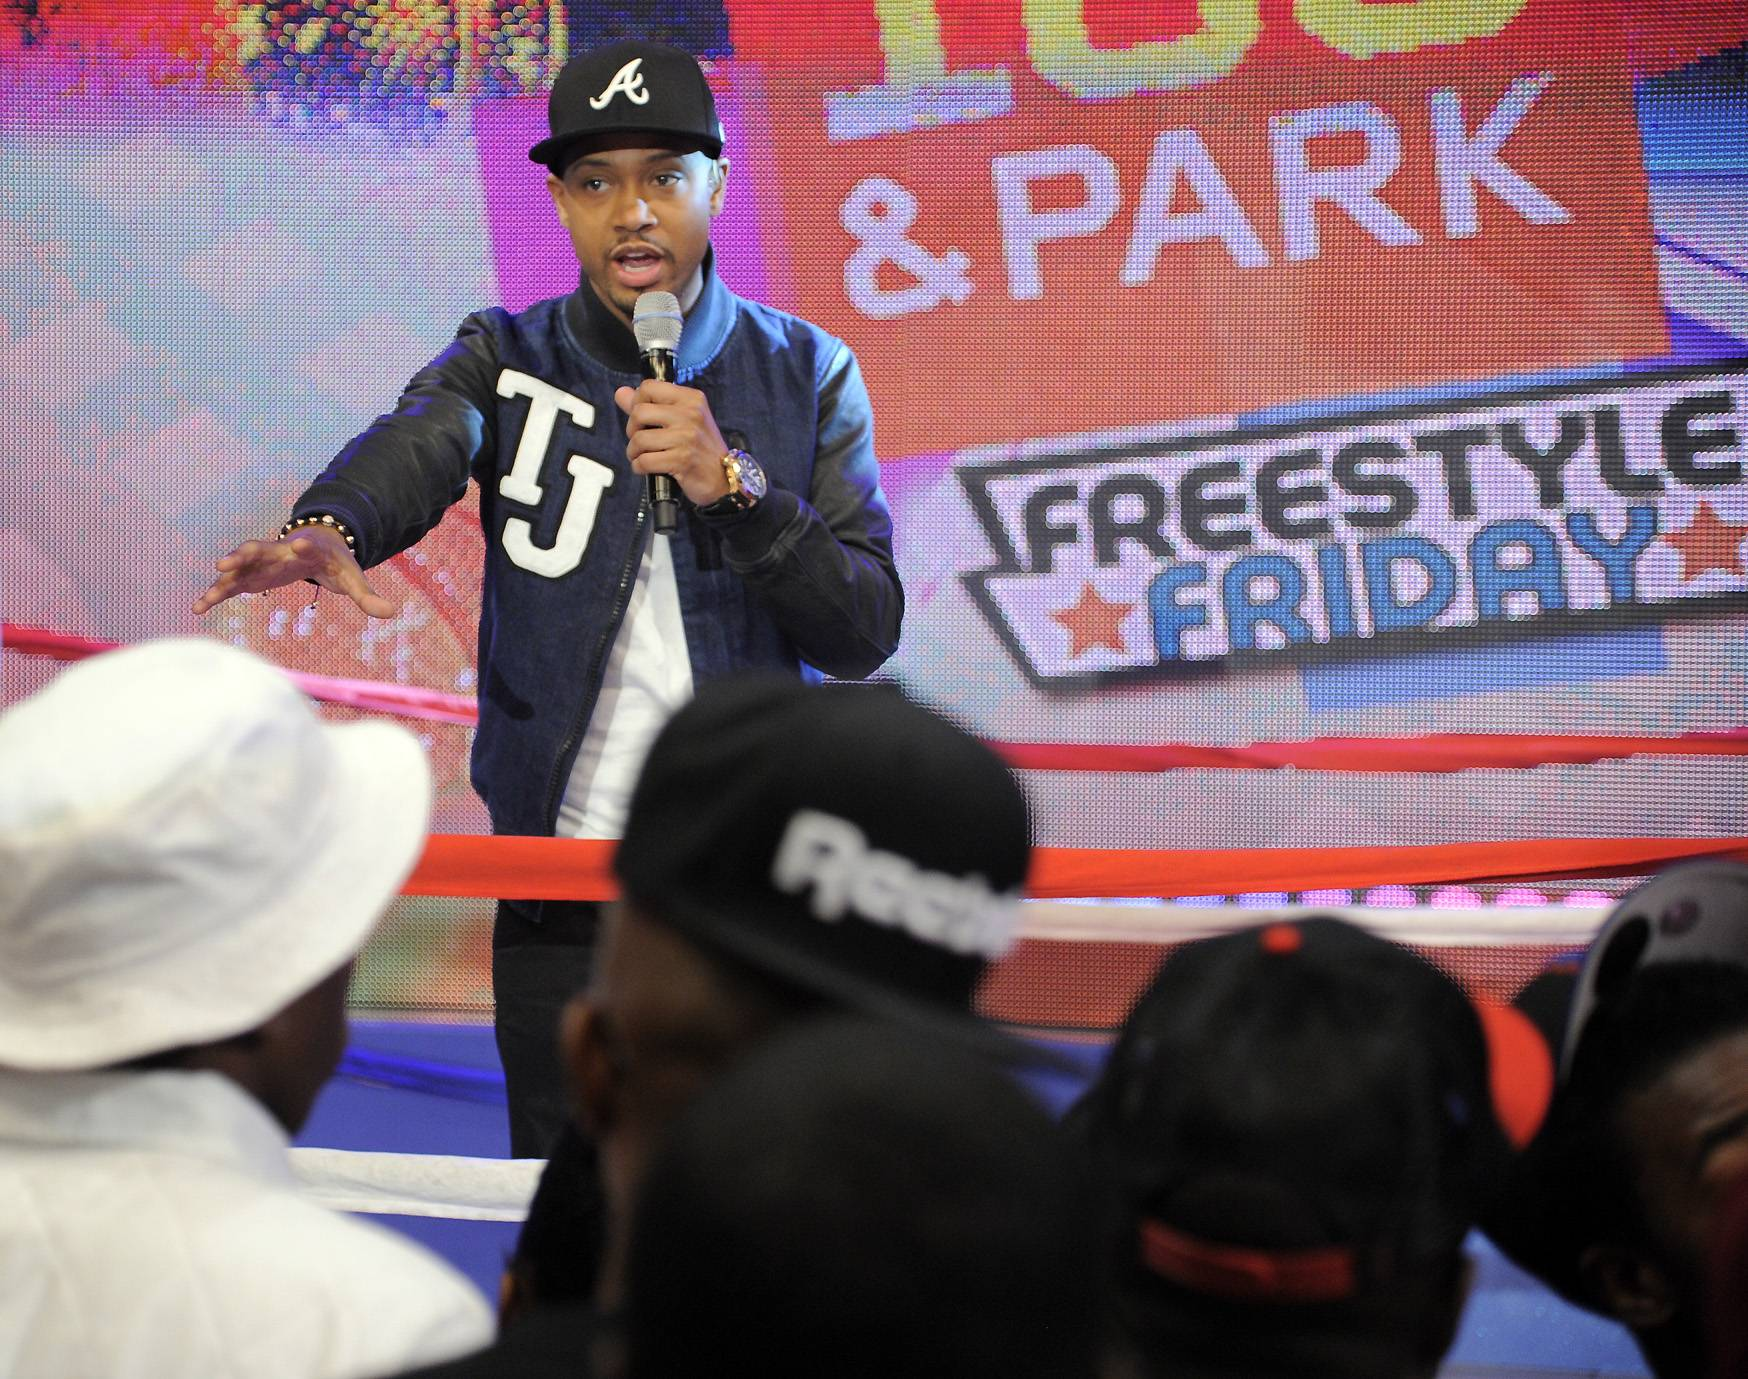 Get Hype - Terrence J preps the crowd for the upcoming battle at 106 & Park, April 6, 2012. (photo: John Ricard / BET)